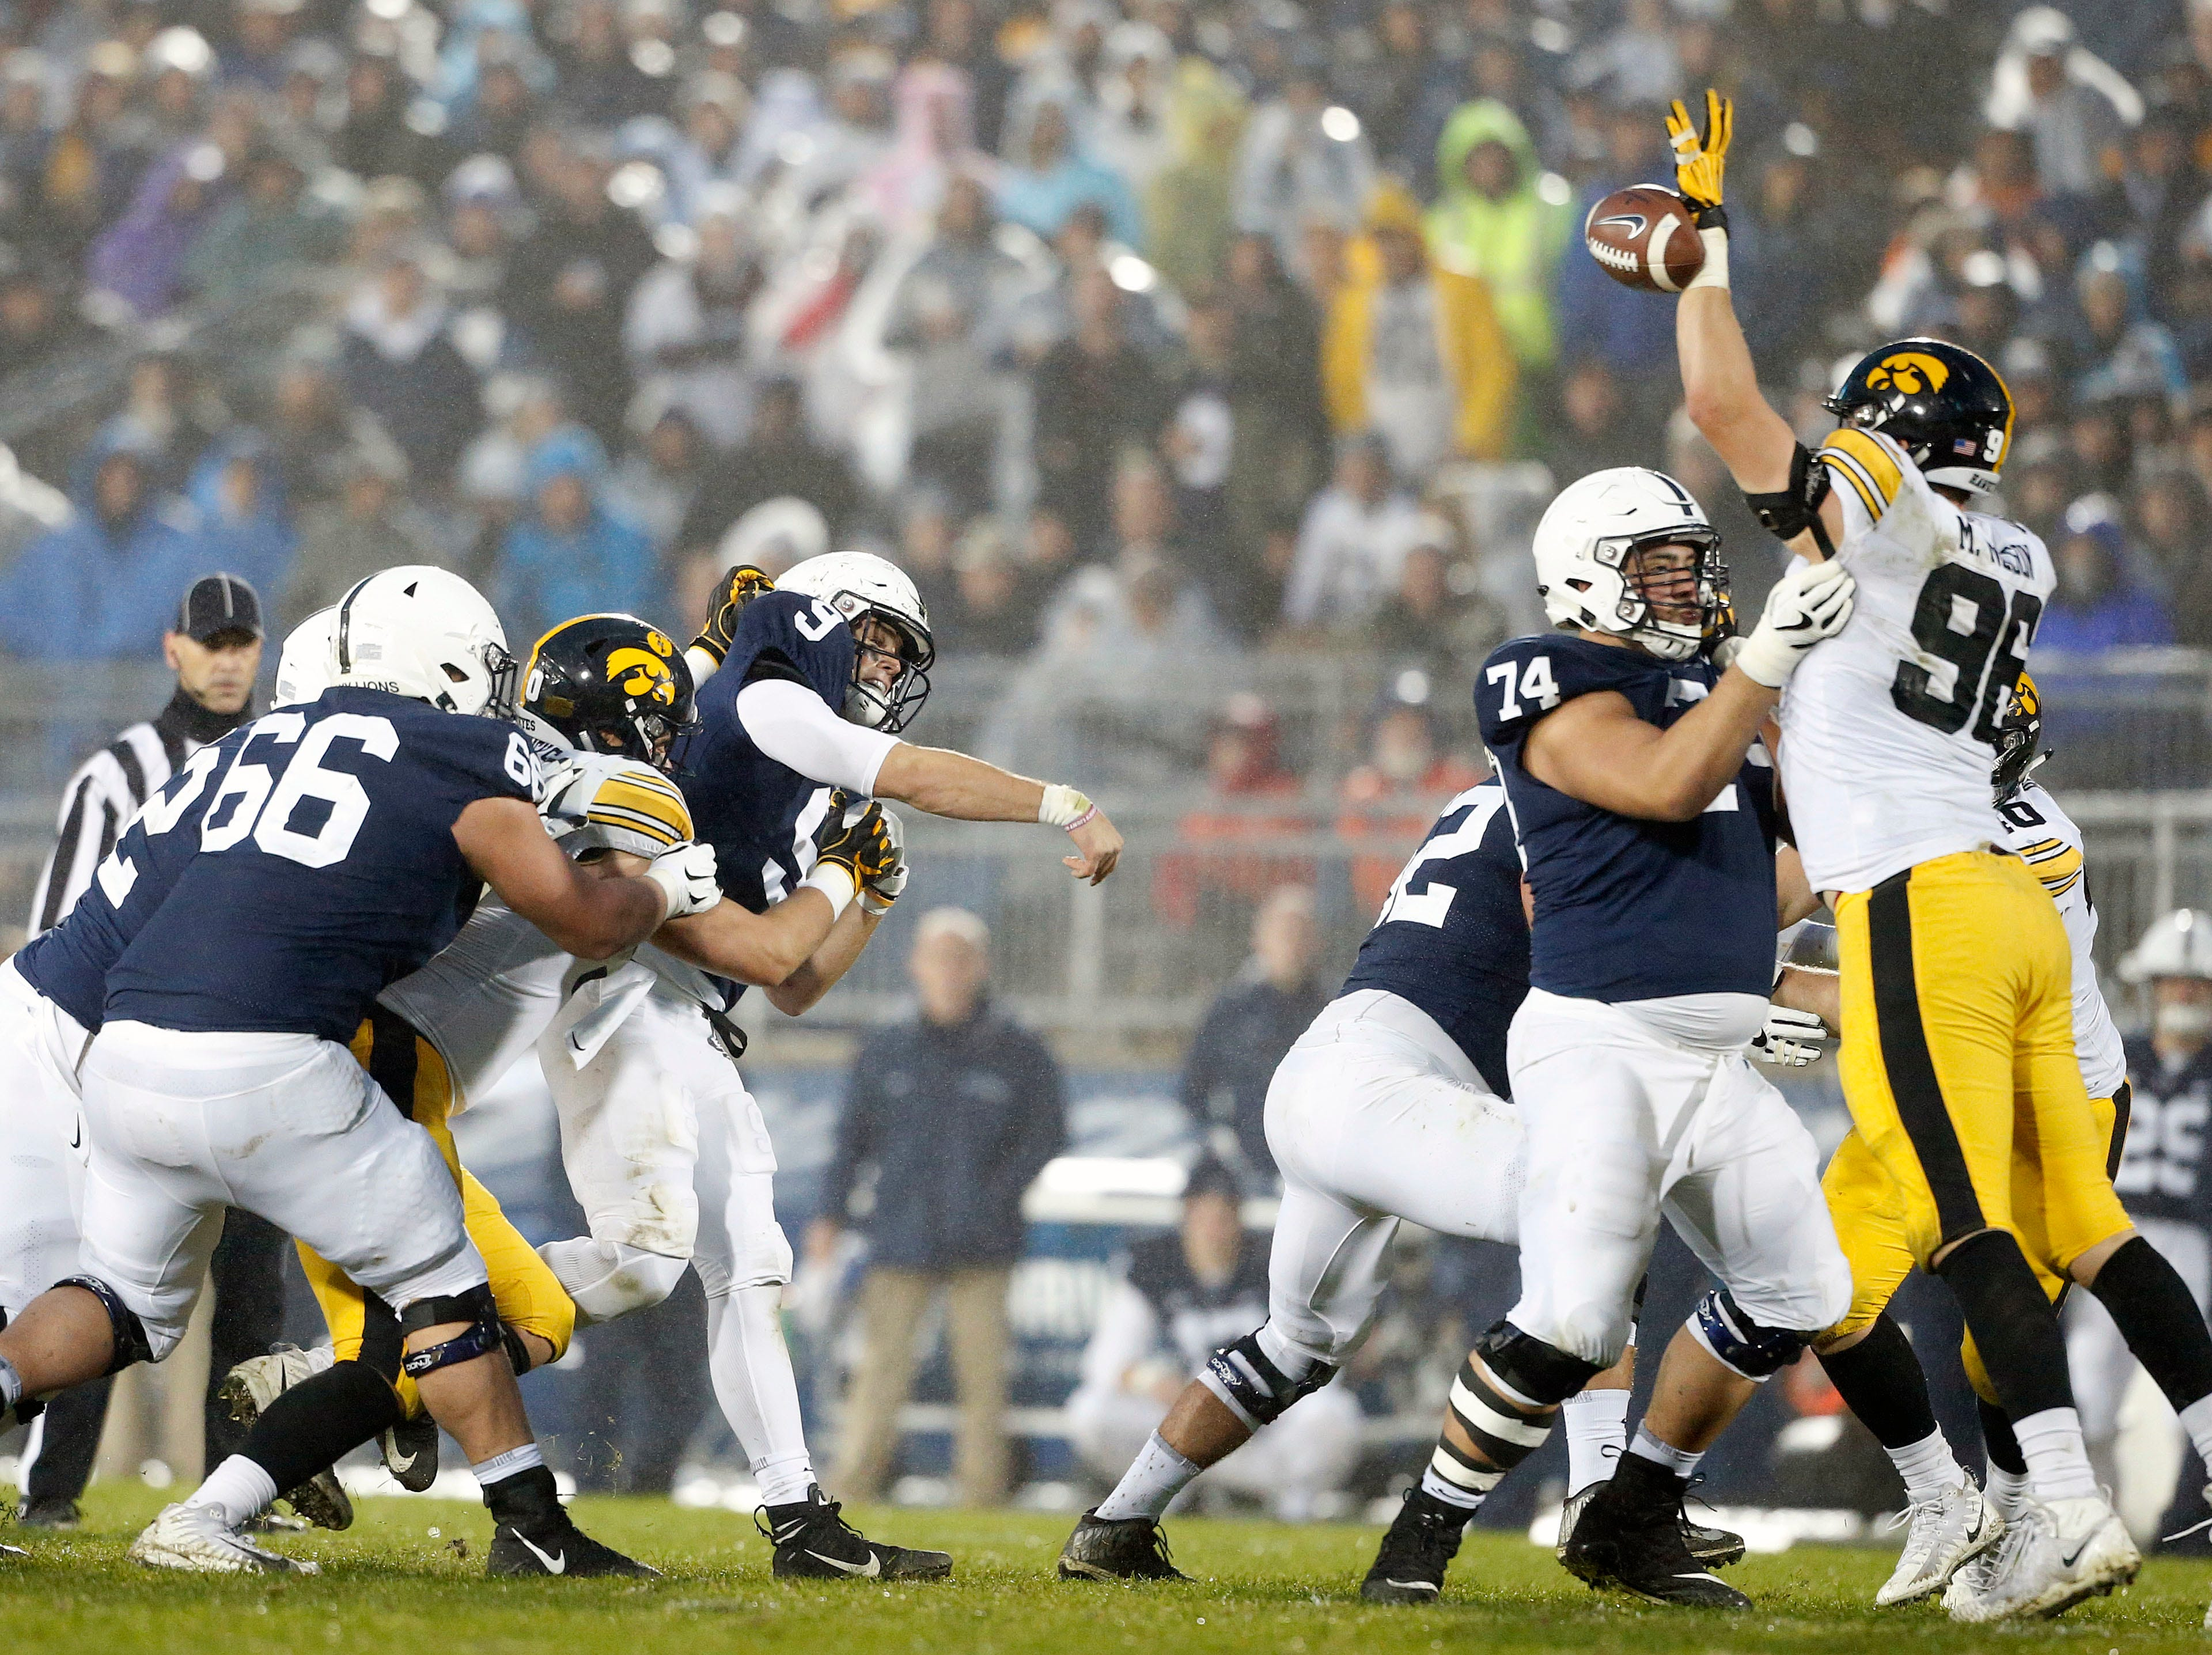 Penn State quarterback Trace McSorley (9) has his pass knocked down by Iowa's Matt Nelson (96) during the second half of an NCAA college football game in State College, Pa., Saturday, Oct. 27, 2018. (AP Photo/Chris Knight)